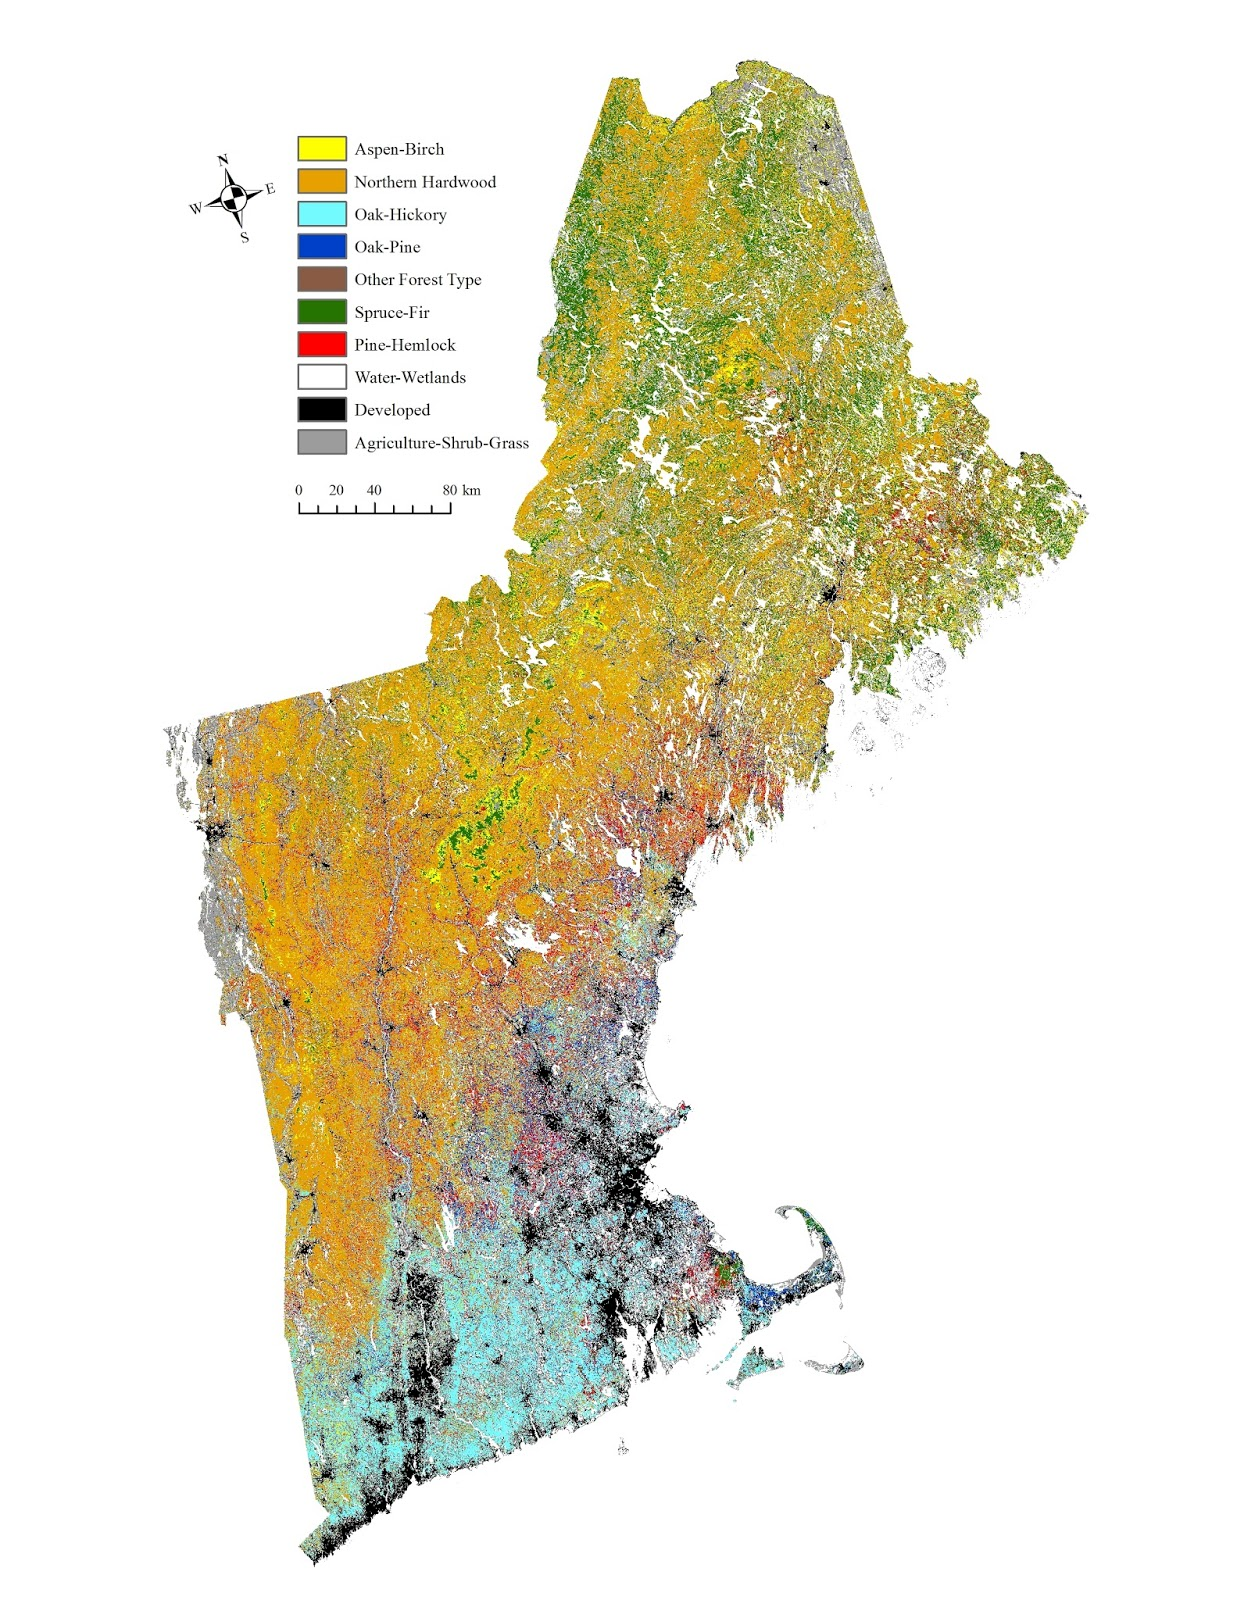 Forest types of New England